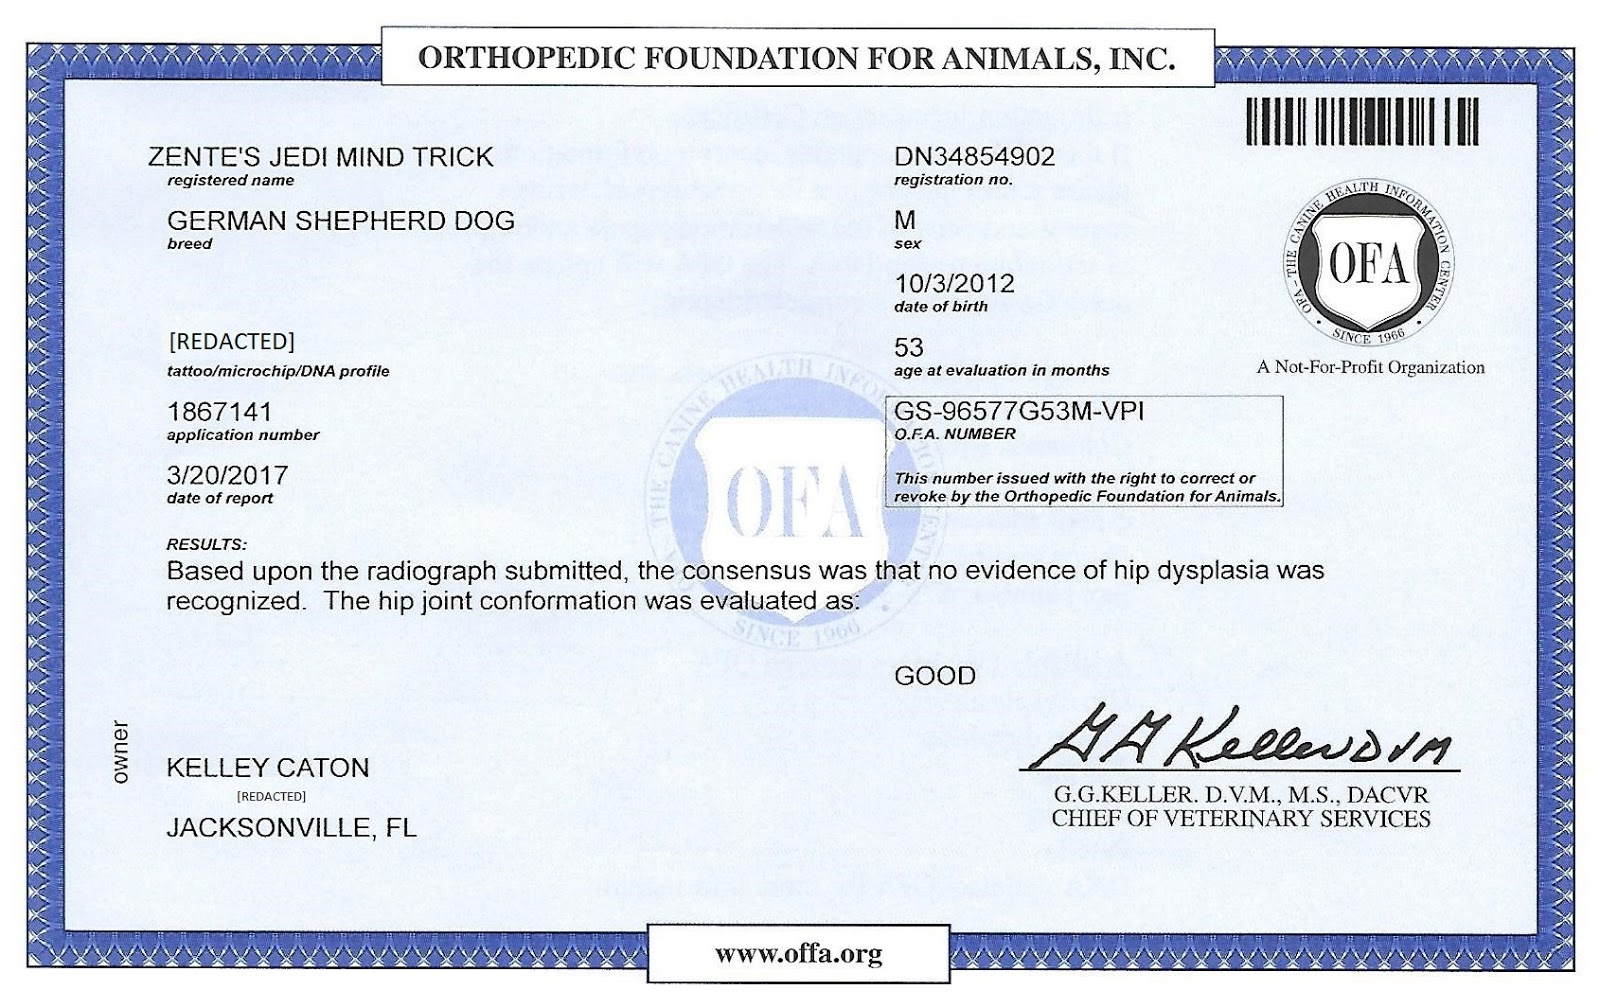 Kelleys dog blog hip report there is no evidence of hip dysplasia heres his certificate ive redacted my address and jedis microchip number because theyre none of the russians xflitez Gallery